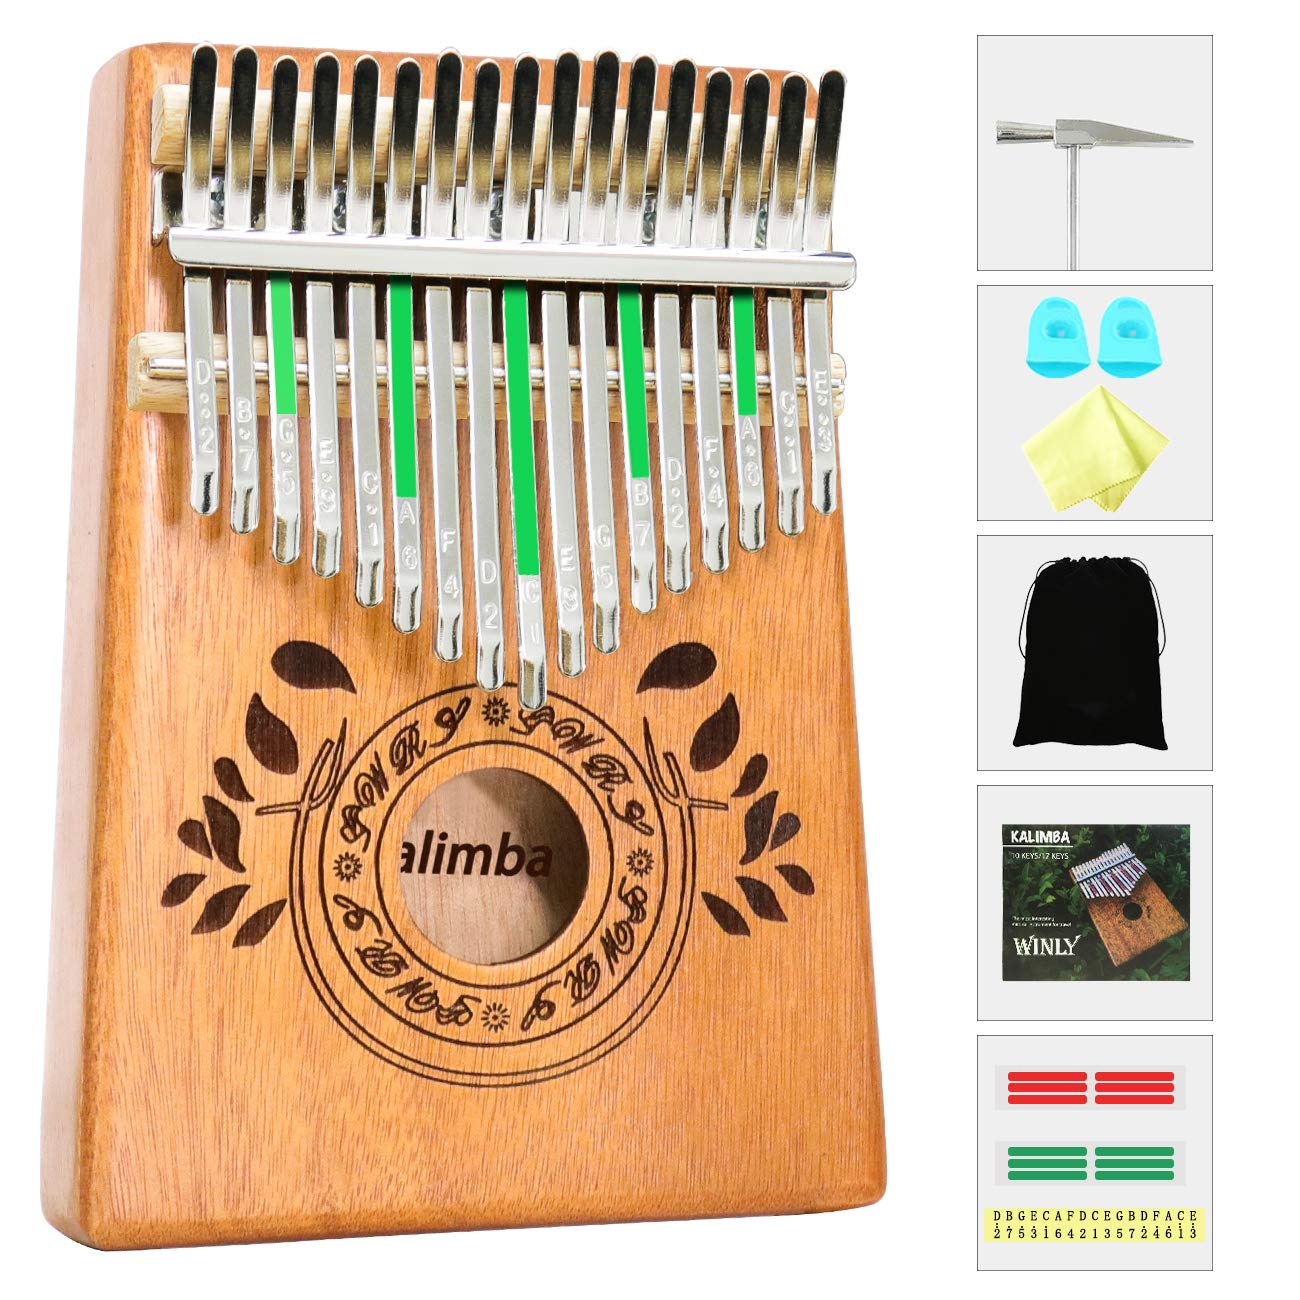 UNOKKI Kalimba 17 Keys Thumb Piano with Study Instruction and Tune Hammer, Portable Mbira Sanza African Wood Finger Piano, Gift for Kids Adult Beginners (Sunset Yellow)